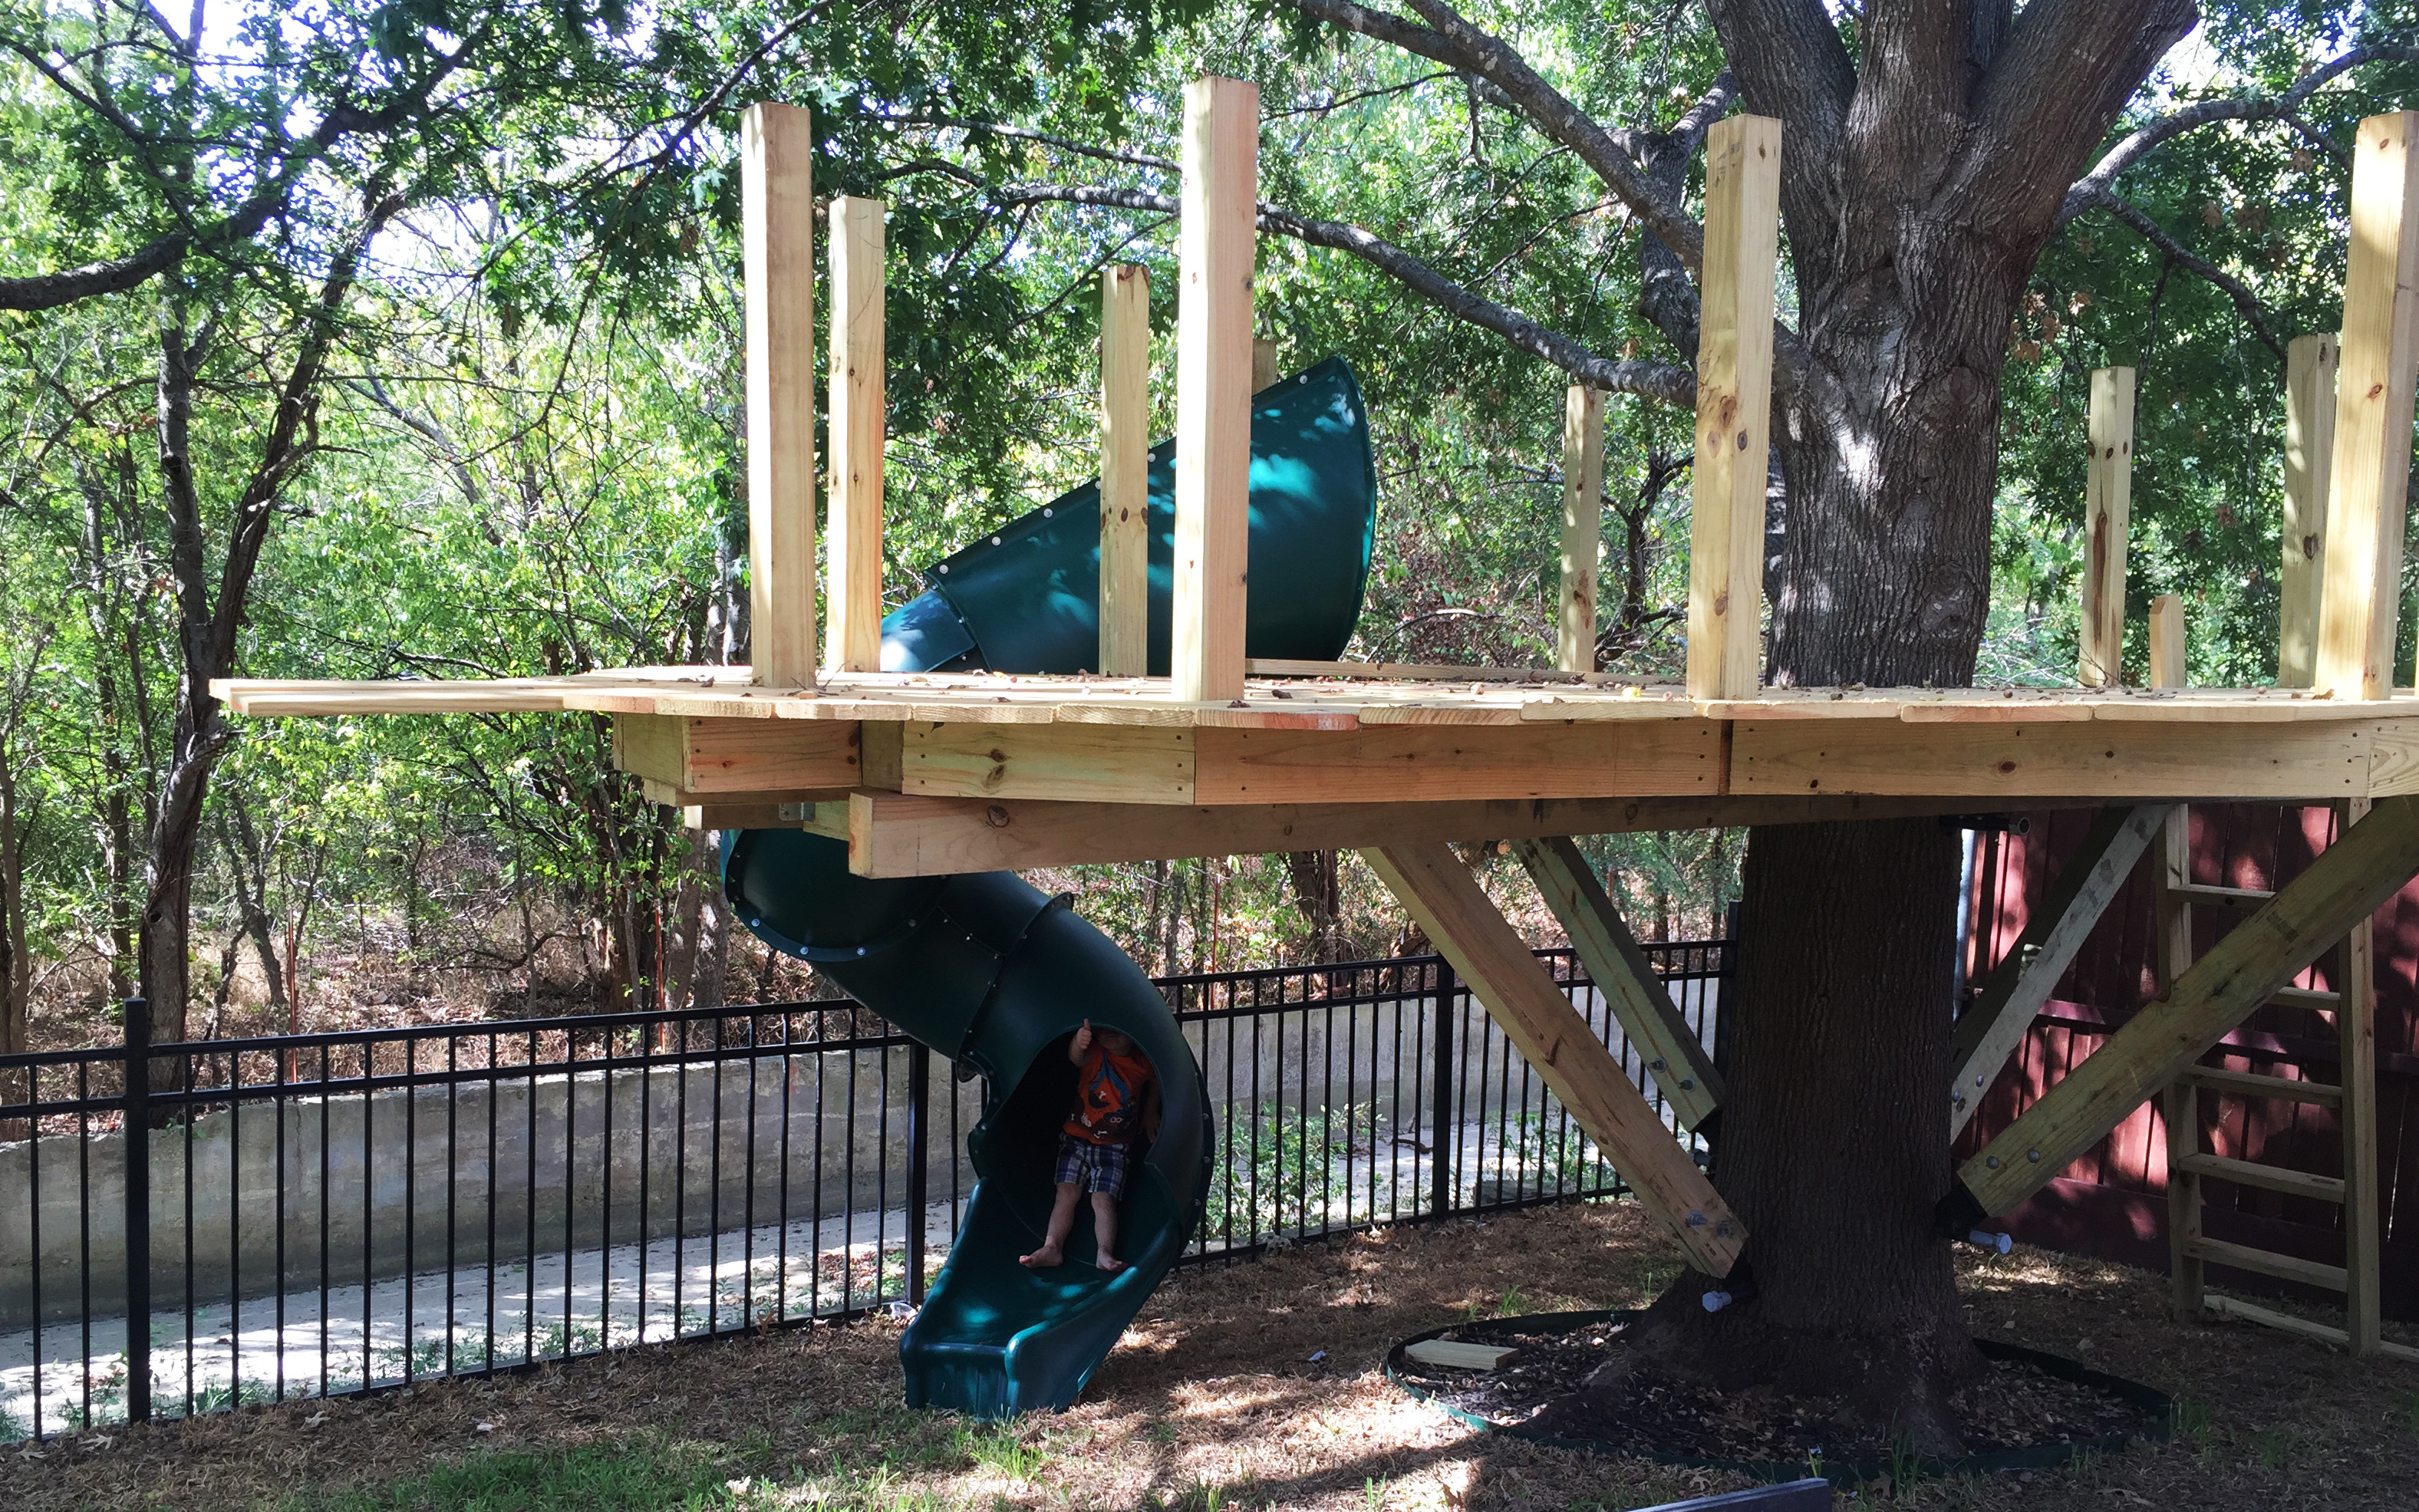 Design Single Tree Treehouse building a treehouse my thoughts and learnings purveyor of awesome brian pierce